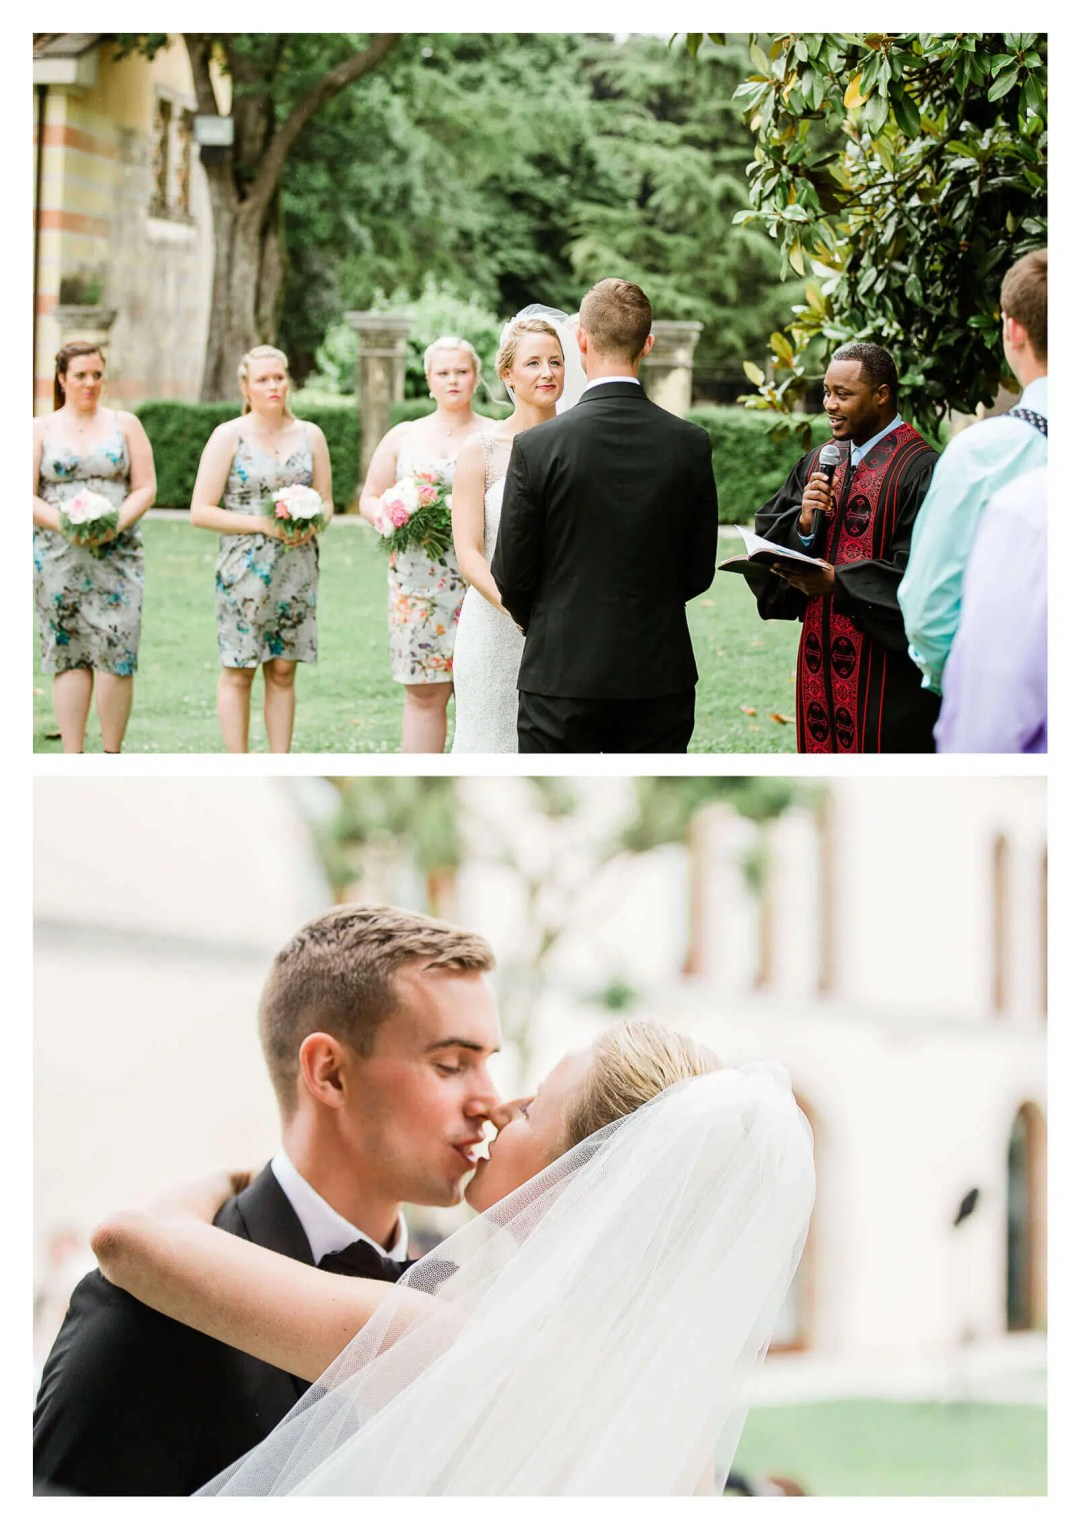 First kiss wedding ceremony at Fossa Mala in Pordenone | Italy destination photographer